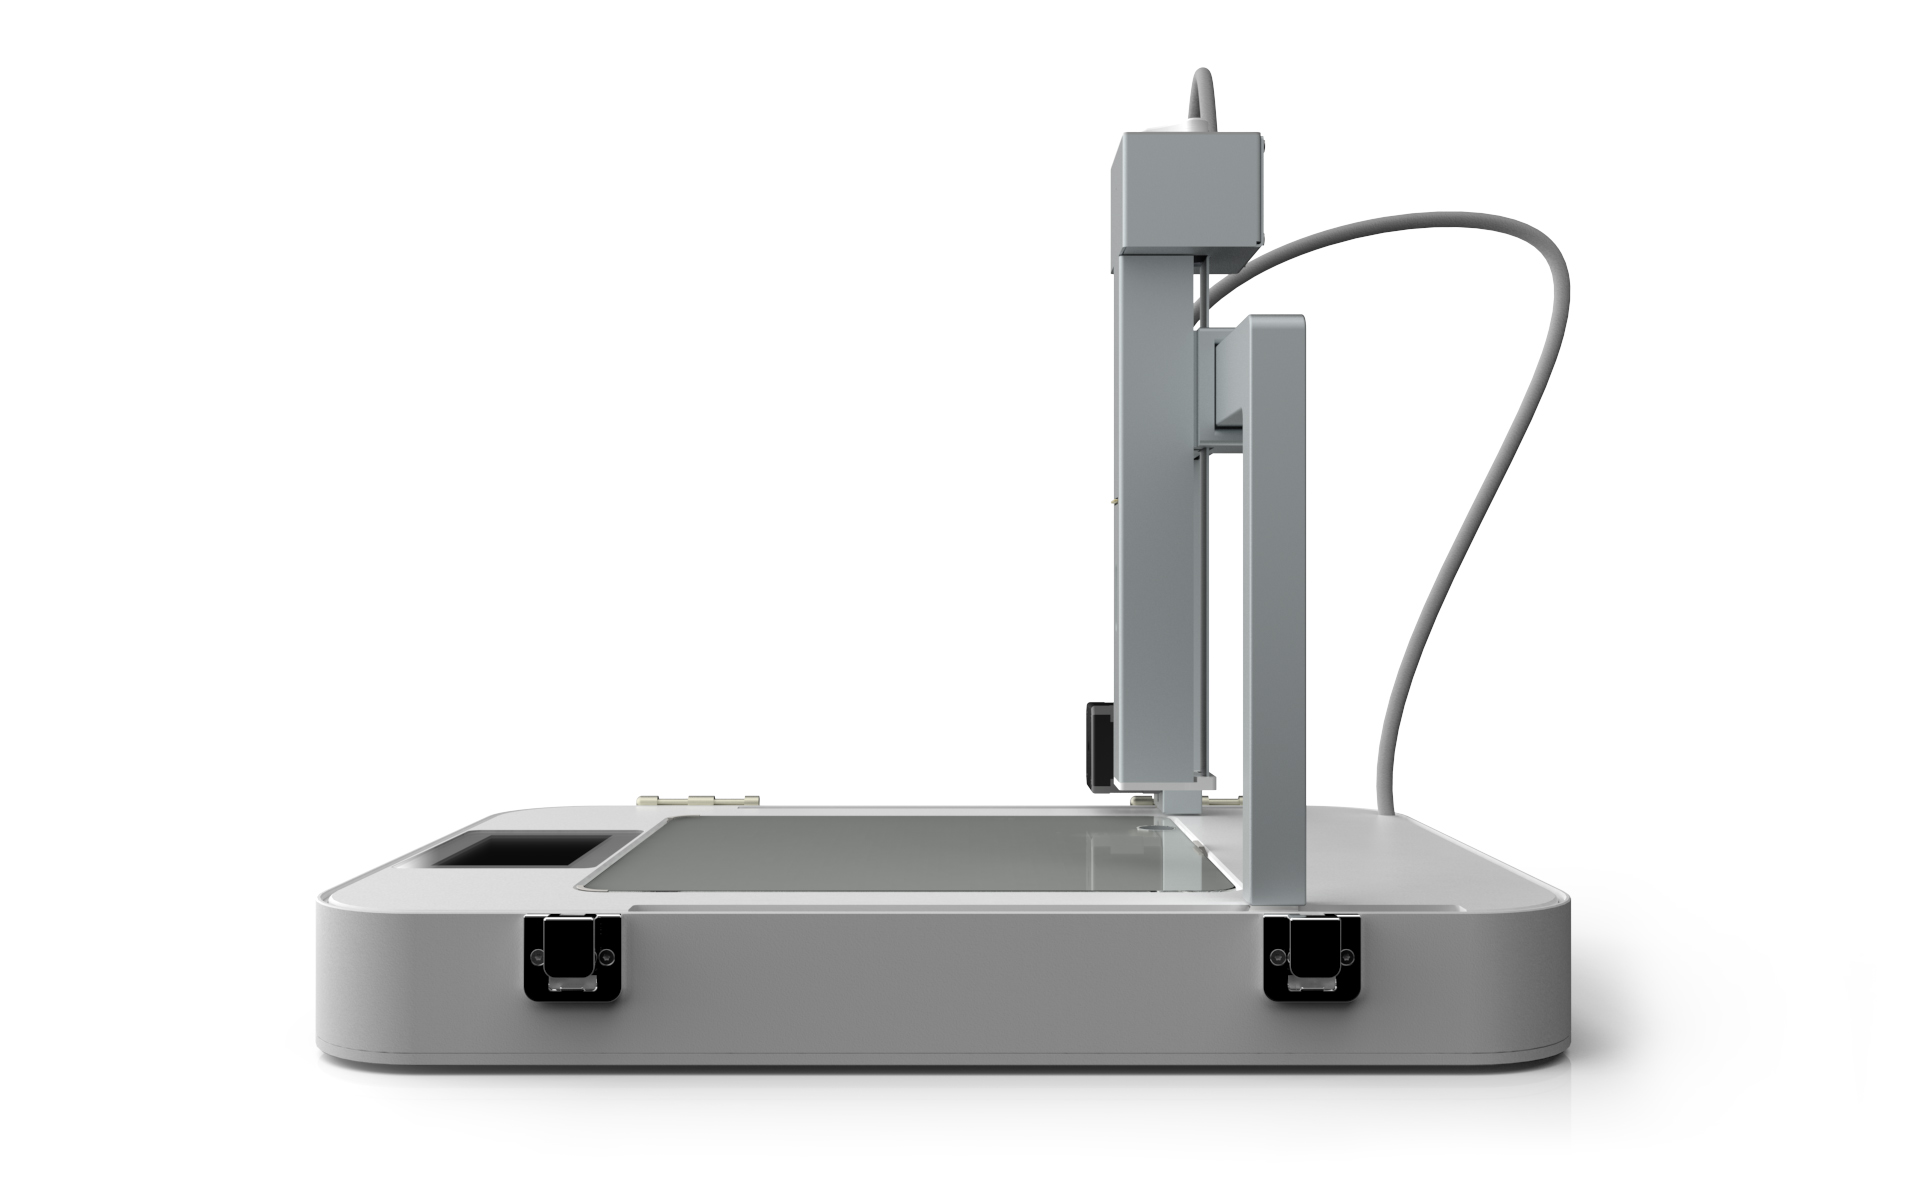 The byFlow food 3D printer. Image via byFlow.